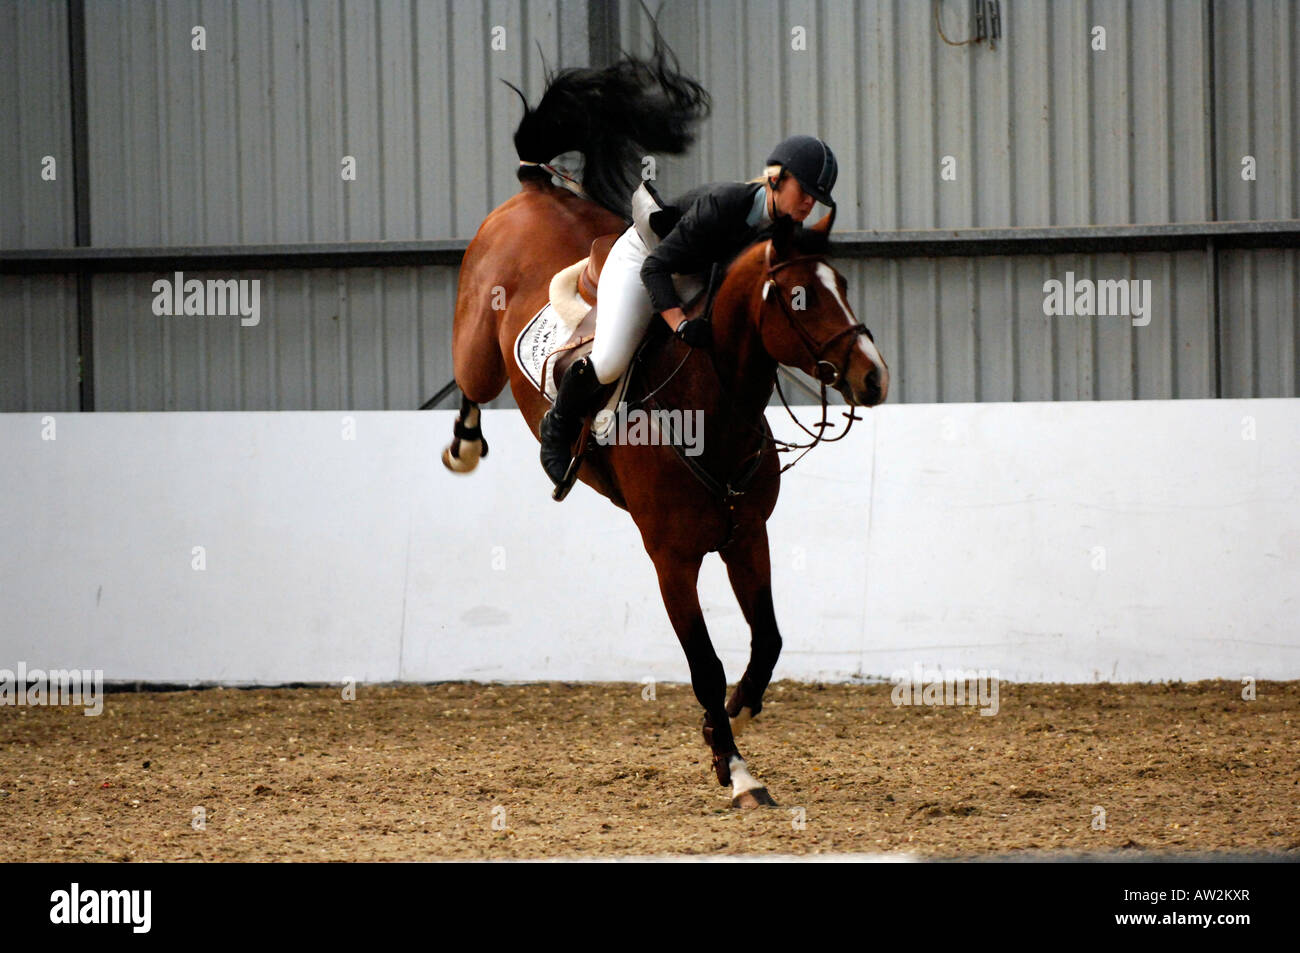 a showjumping horse bucking and trying attempting to through the rider competitor during a competition round in - Stock Image